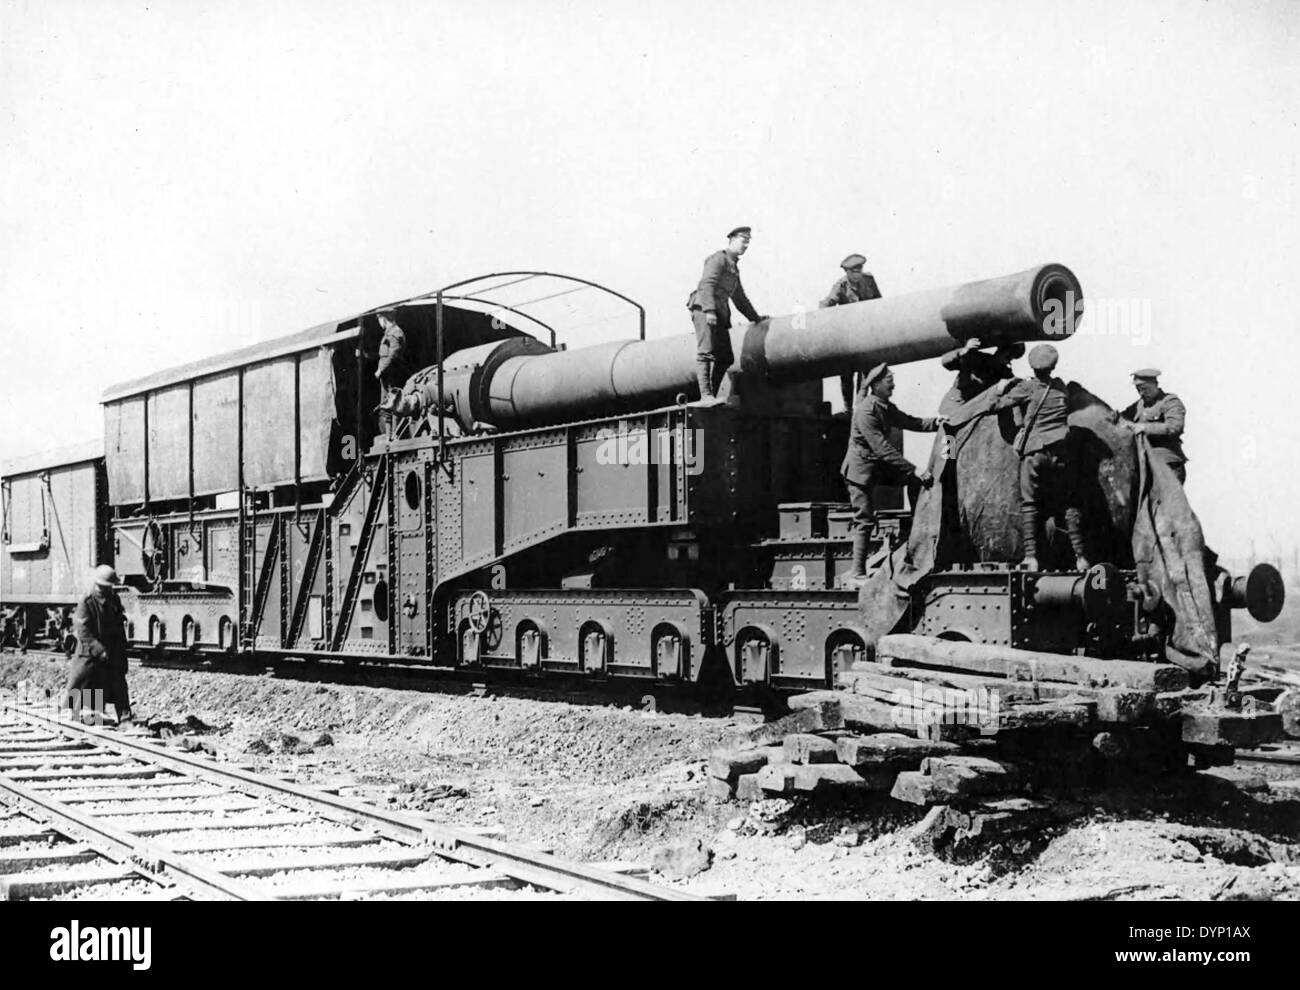 ARMSTRONG WHITWORTH   12 inch railway gun at Arras in 1917 - Stock Image